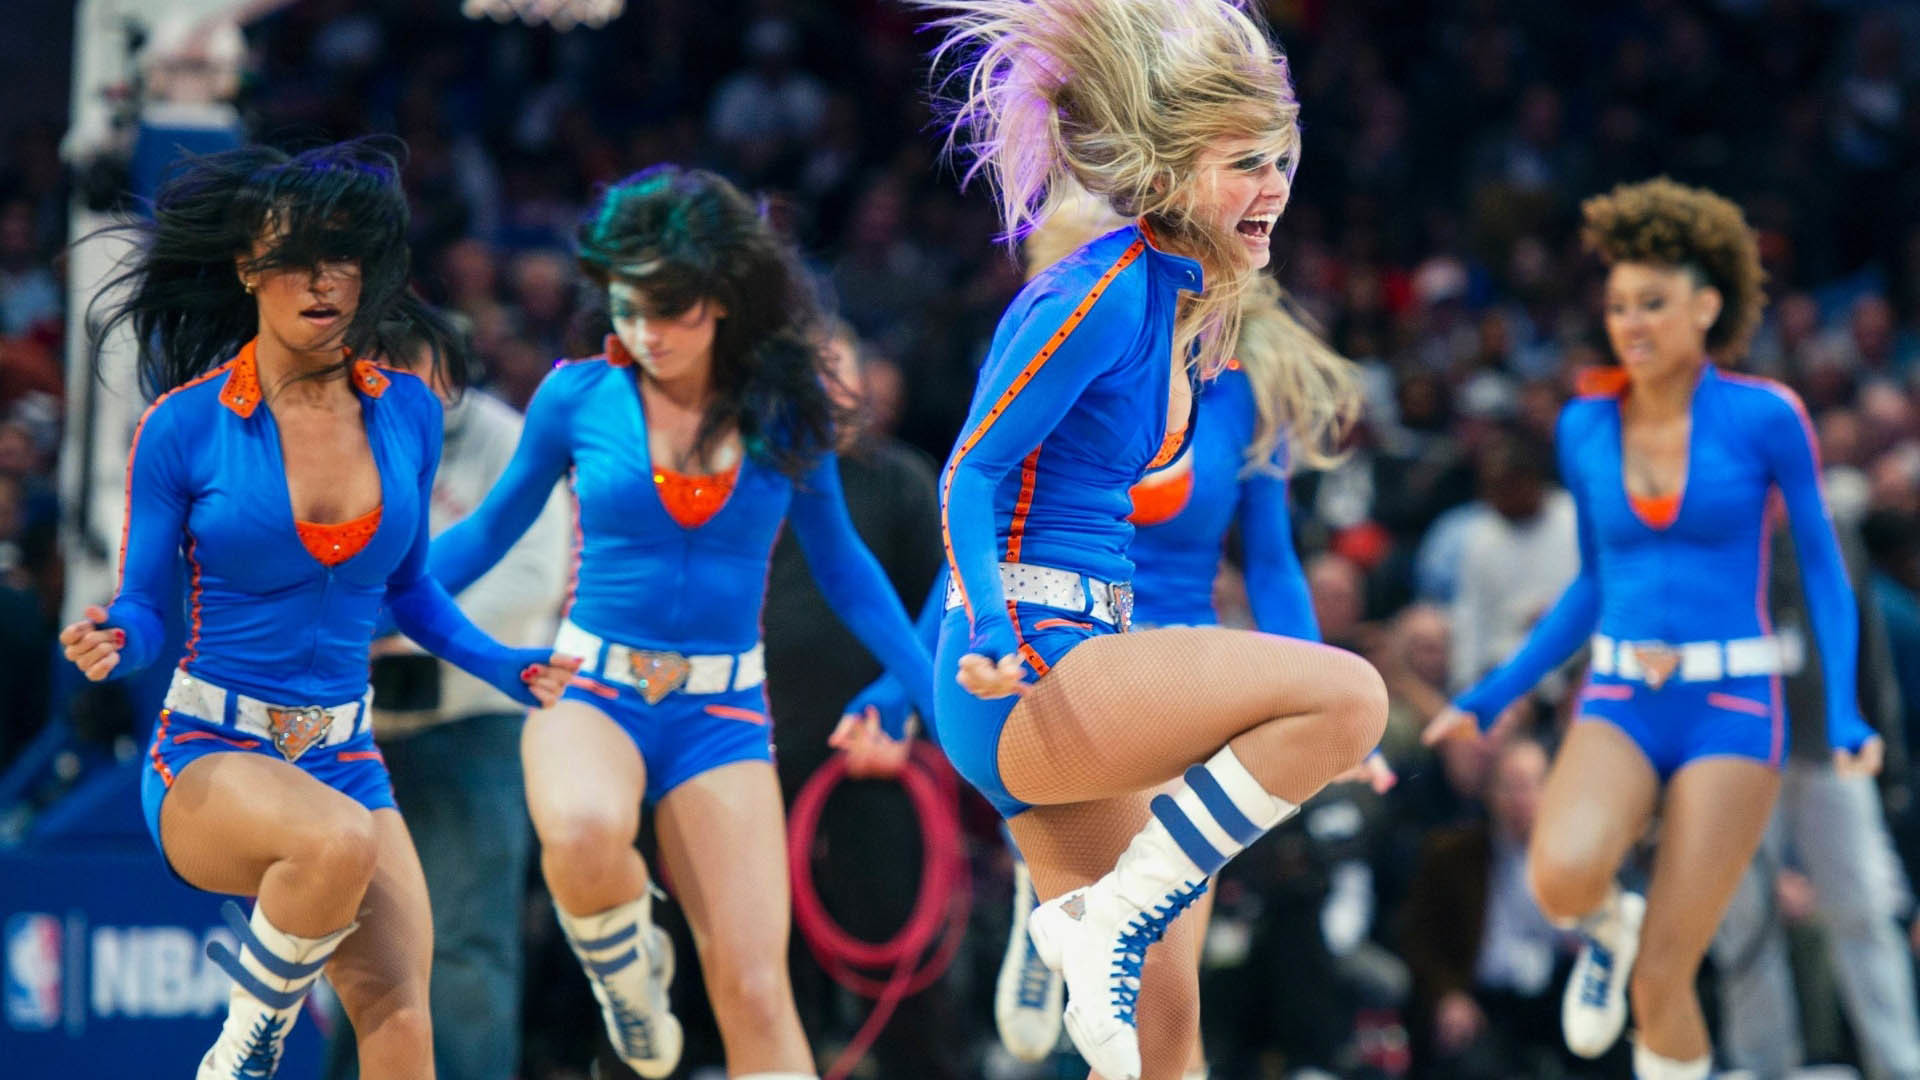 1920x1080 New York Knicks cheerleader basketball nba g wallpaper |  | 159766  | WallpaperUP